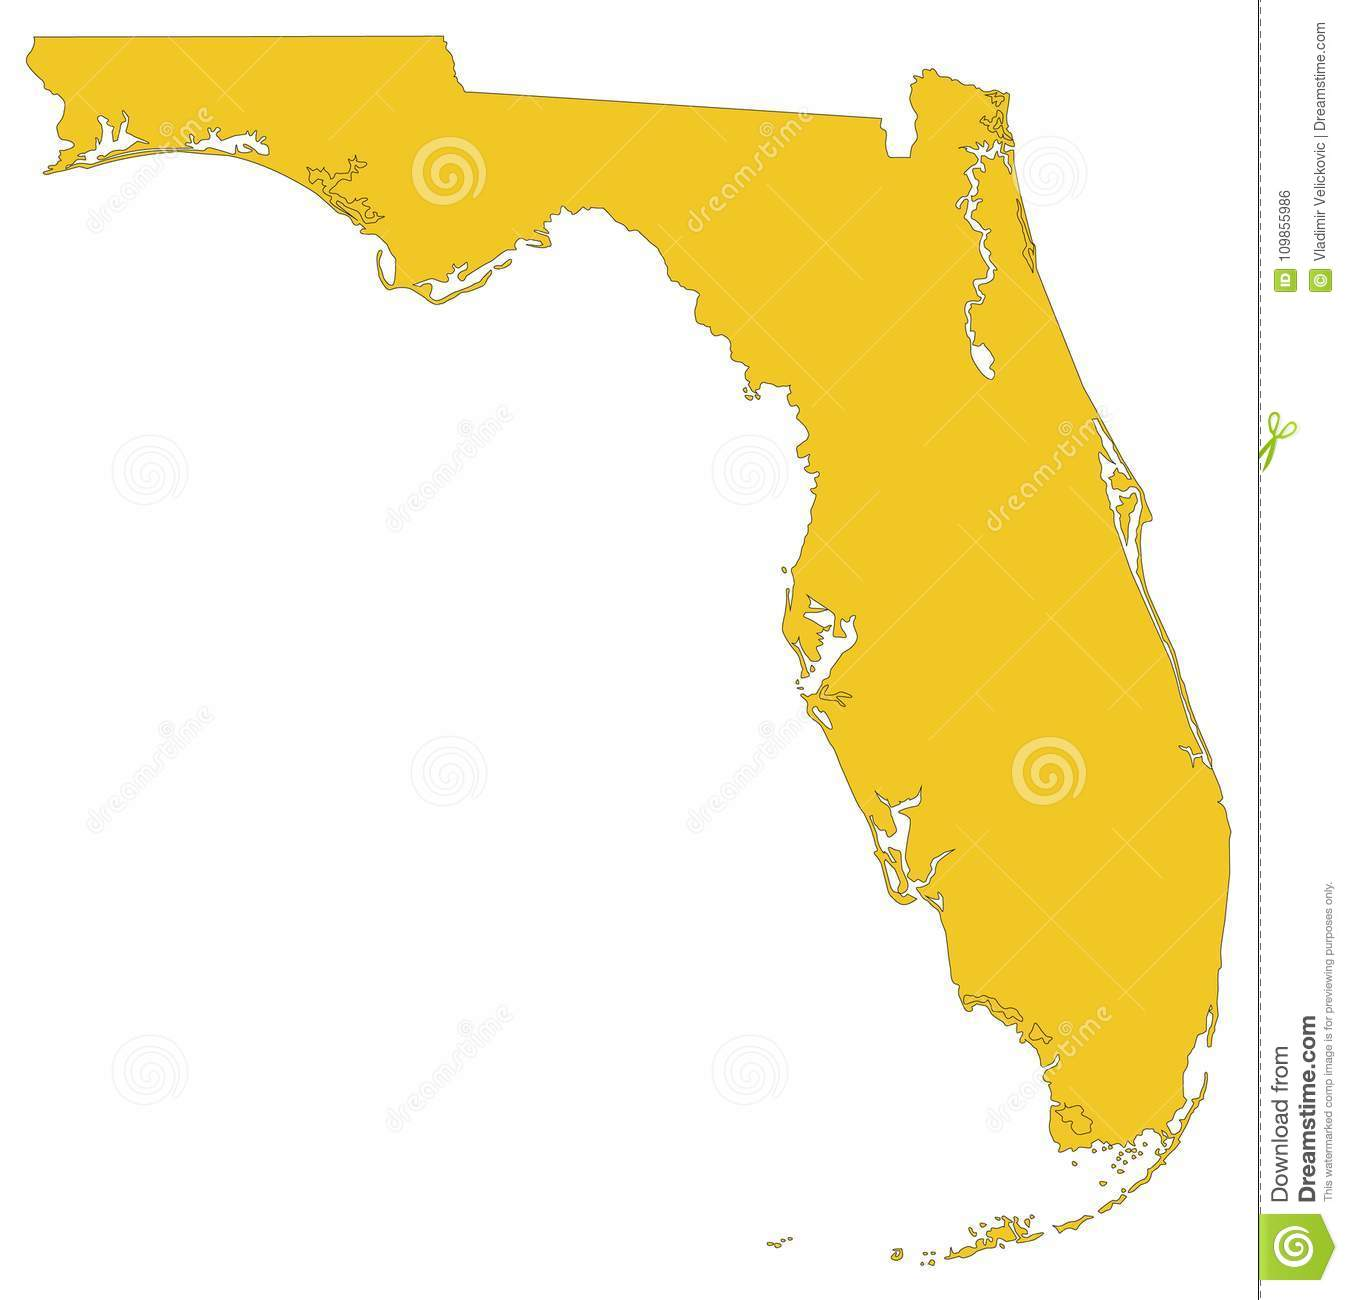 Florida Map State.Florida Map Southernmost Contiguous State In The United States